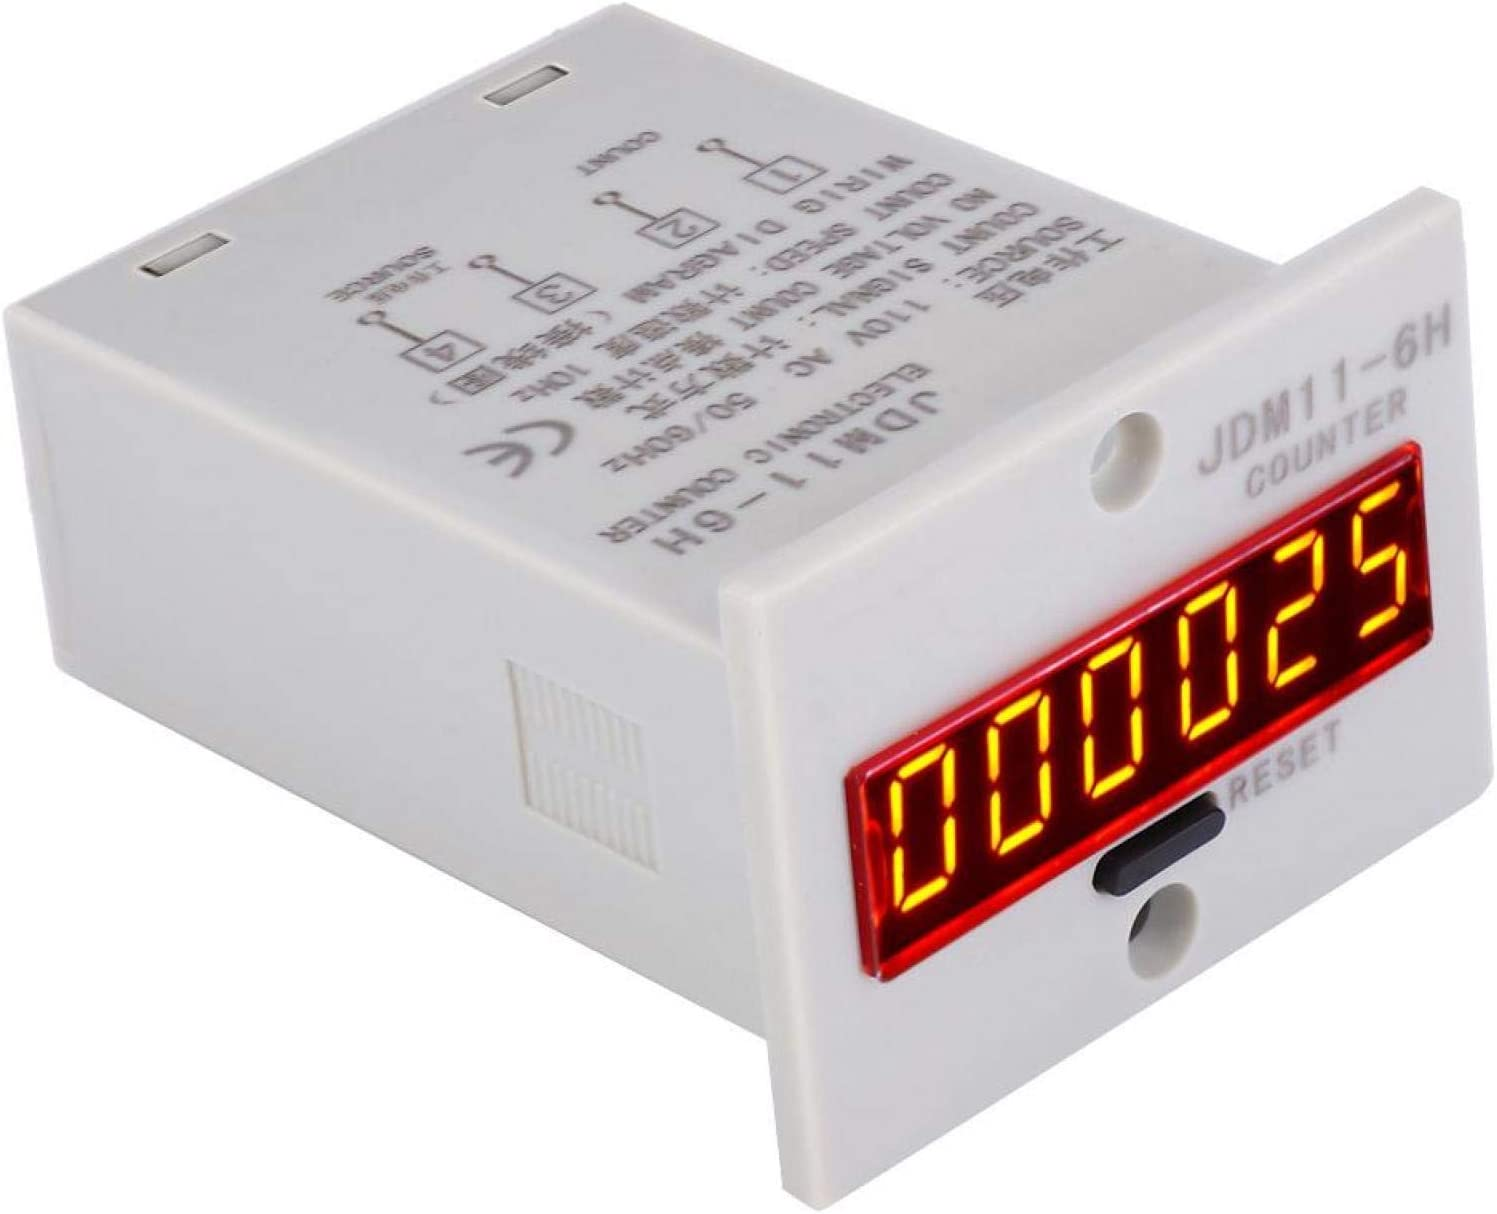 JDM11-6H Free Shipping Cheap Bargain Gift No Voltage Limited time cheap sale Counter Digits Relay Elect 6